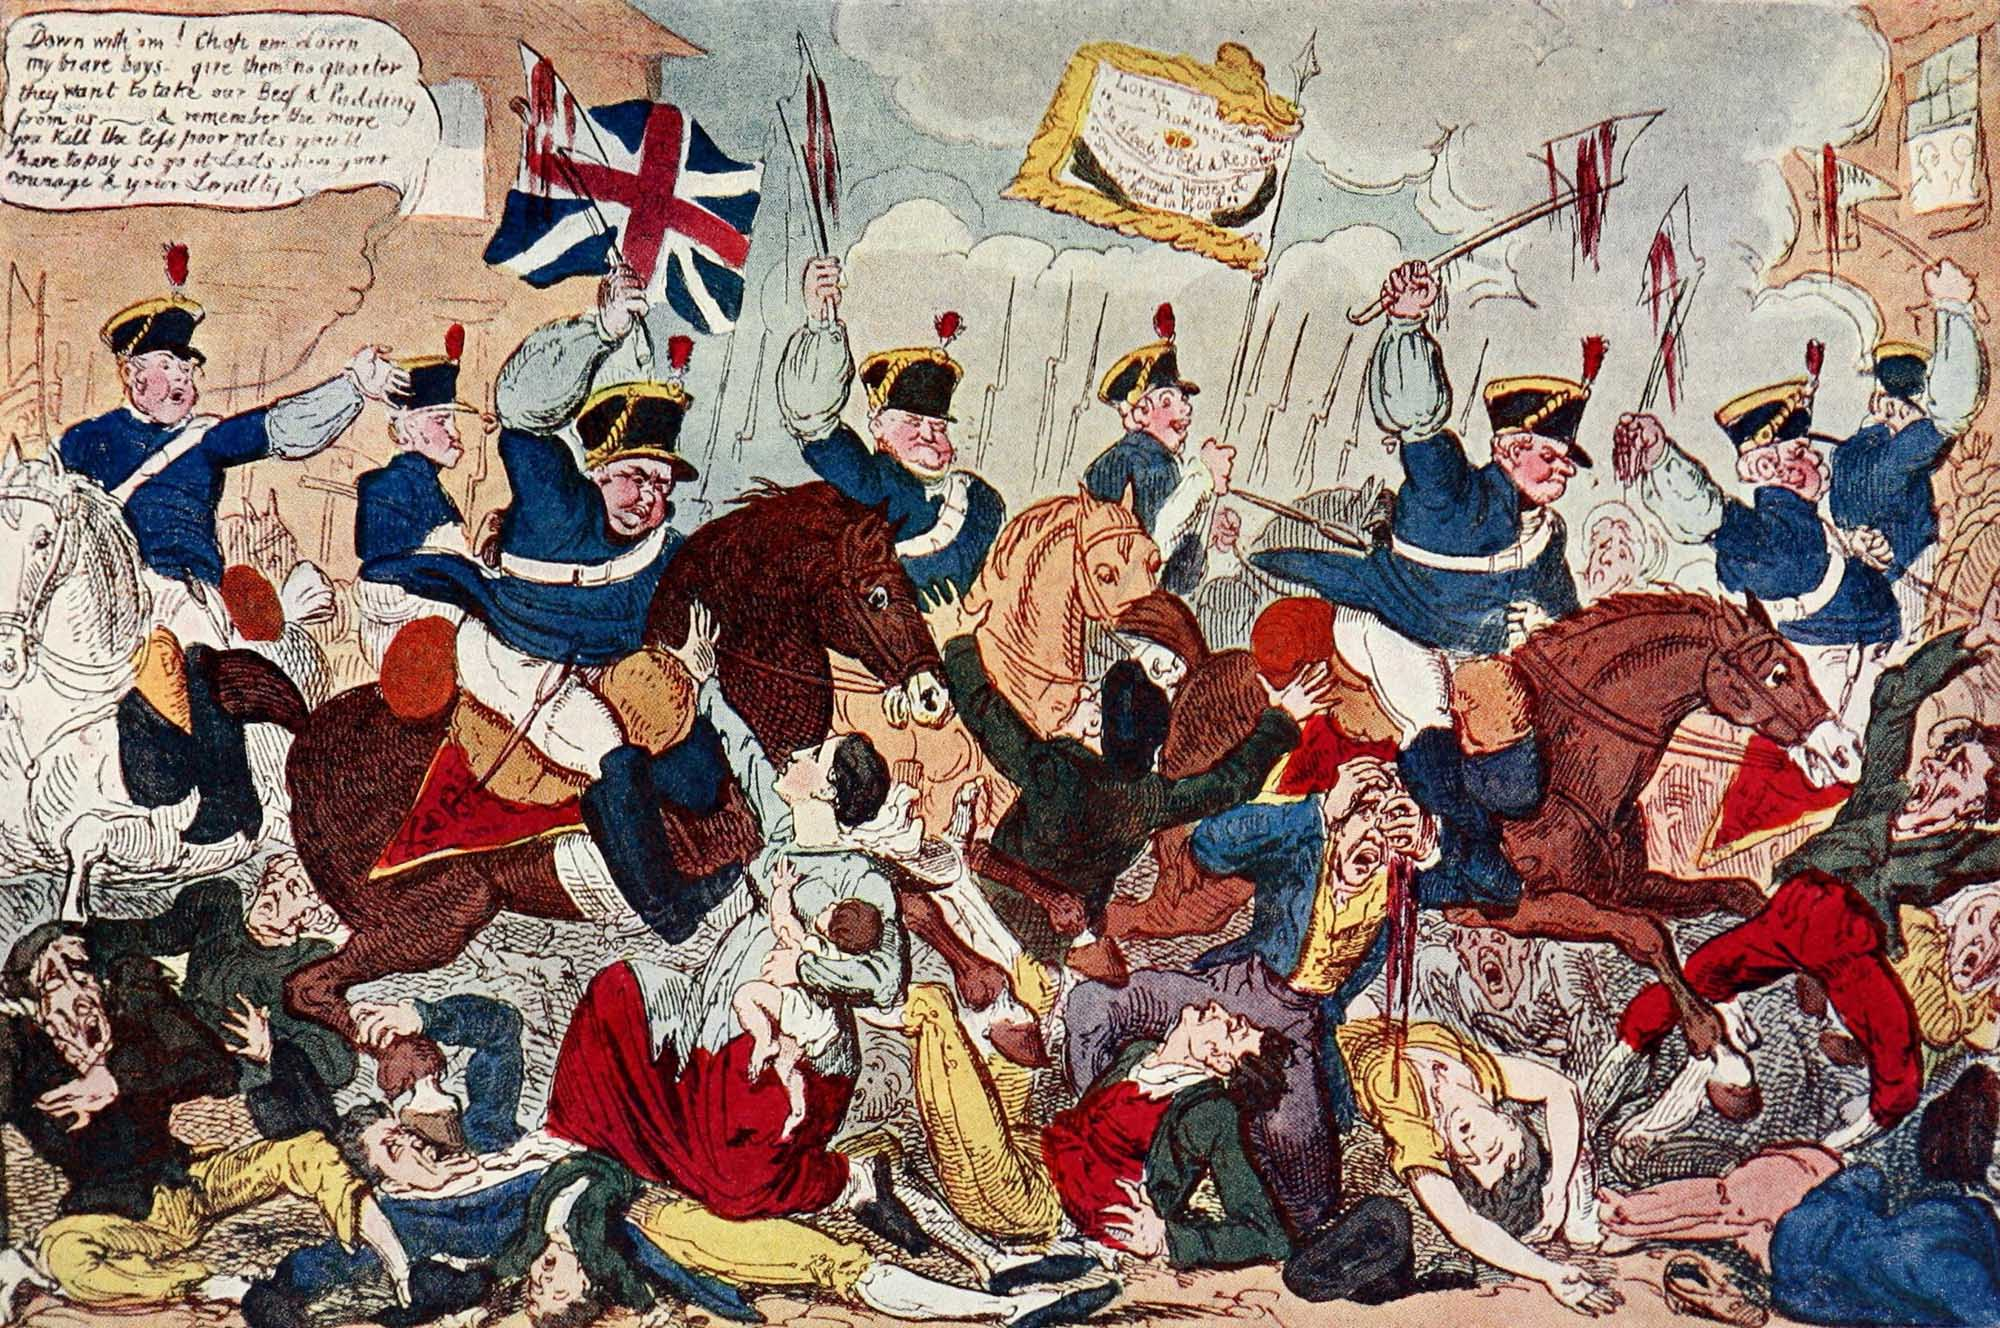 a caricature coloured cartoon showing men on horseback ploughing into a crowd of people